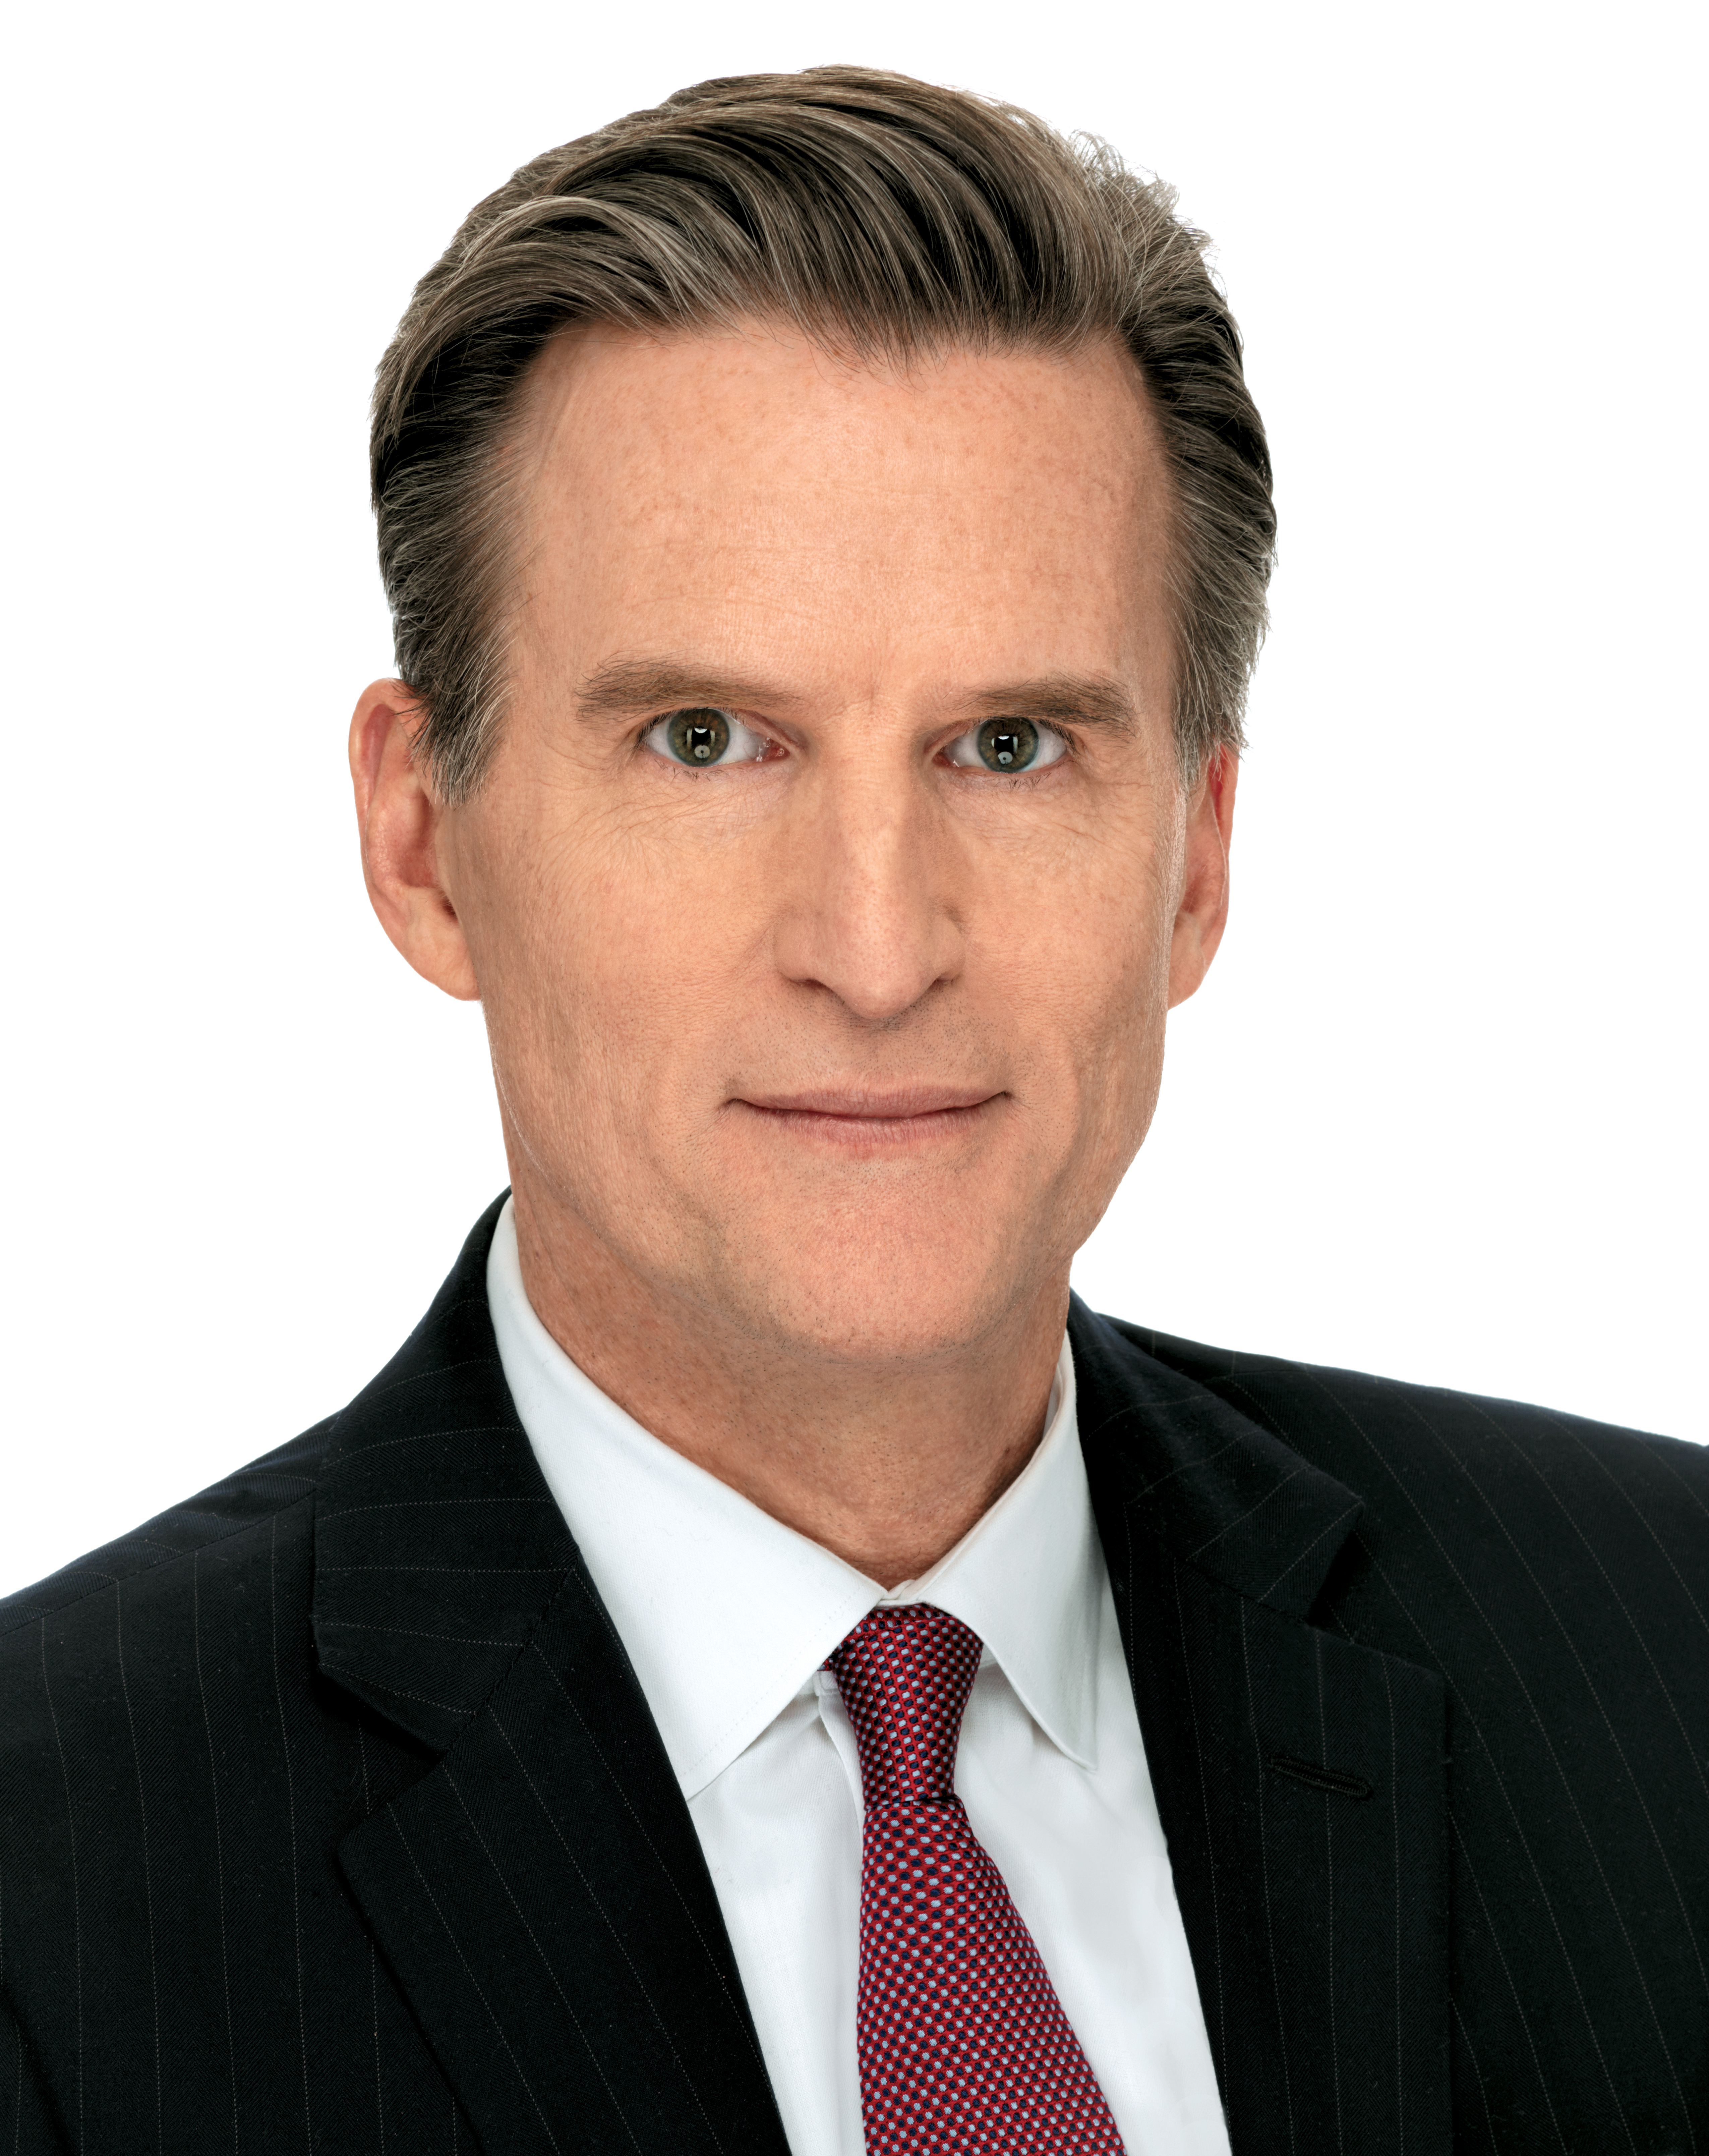 Jeff Gennette - President and Chief Executive Officer, Macy's, Inc. (Photo: Business Wire)